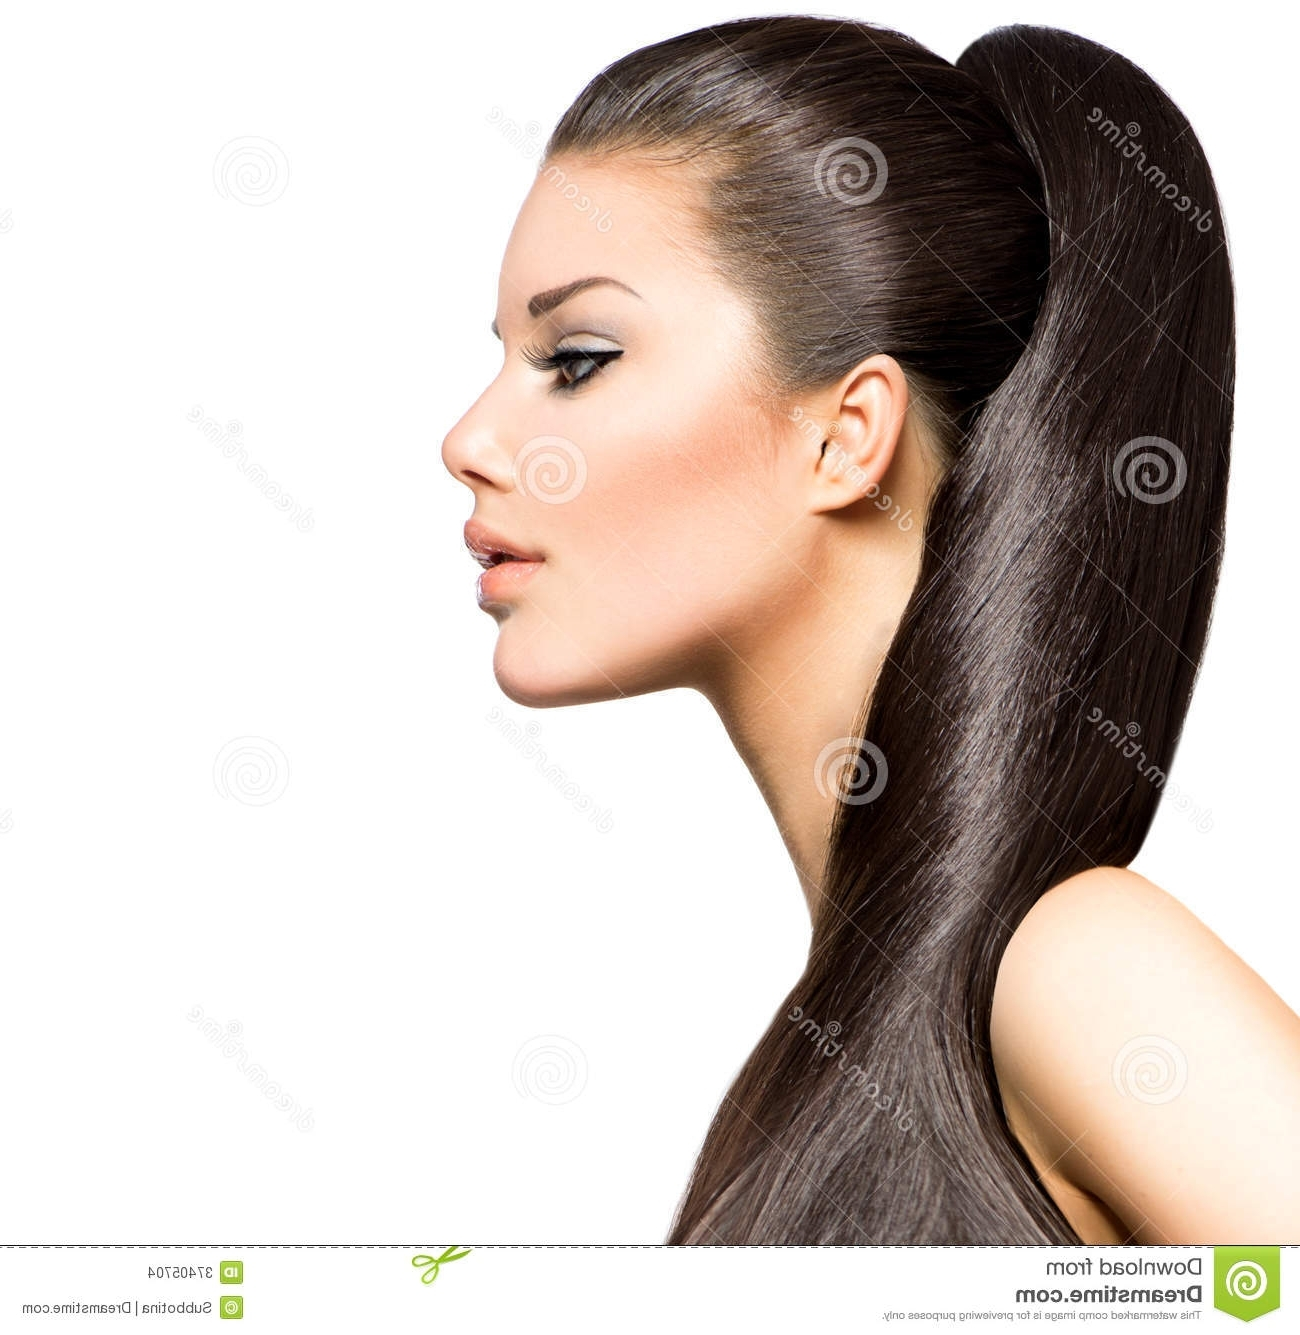 Ponytail Hairstyle Stock Photo. Image Of Look, Background – 37405704 In Preferred Ponytail Hairstyles For Brunettes (Gallery 4 of 20)